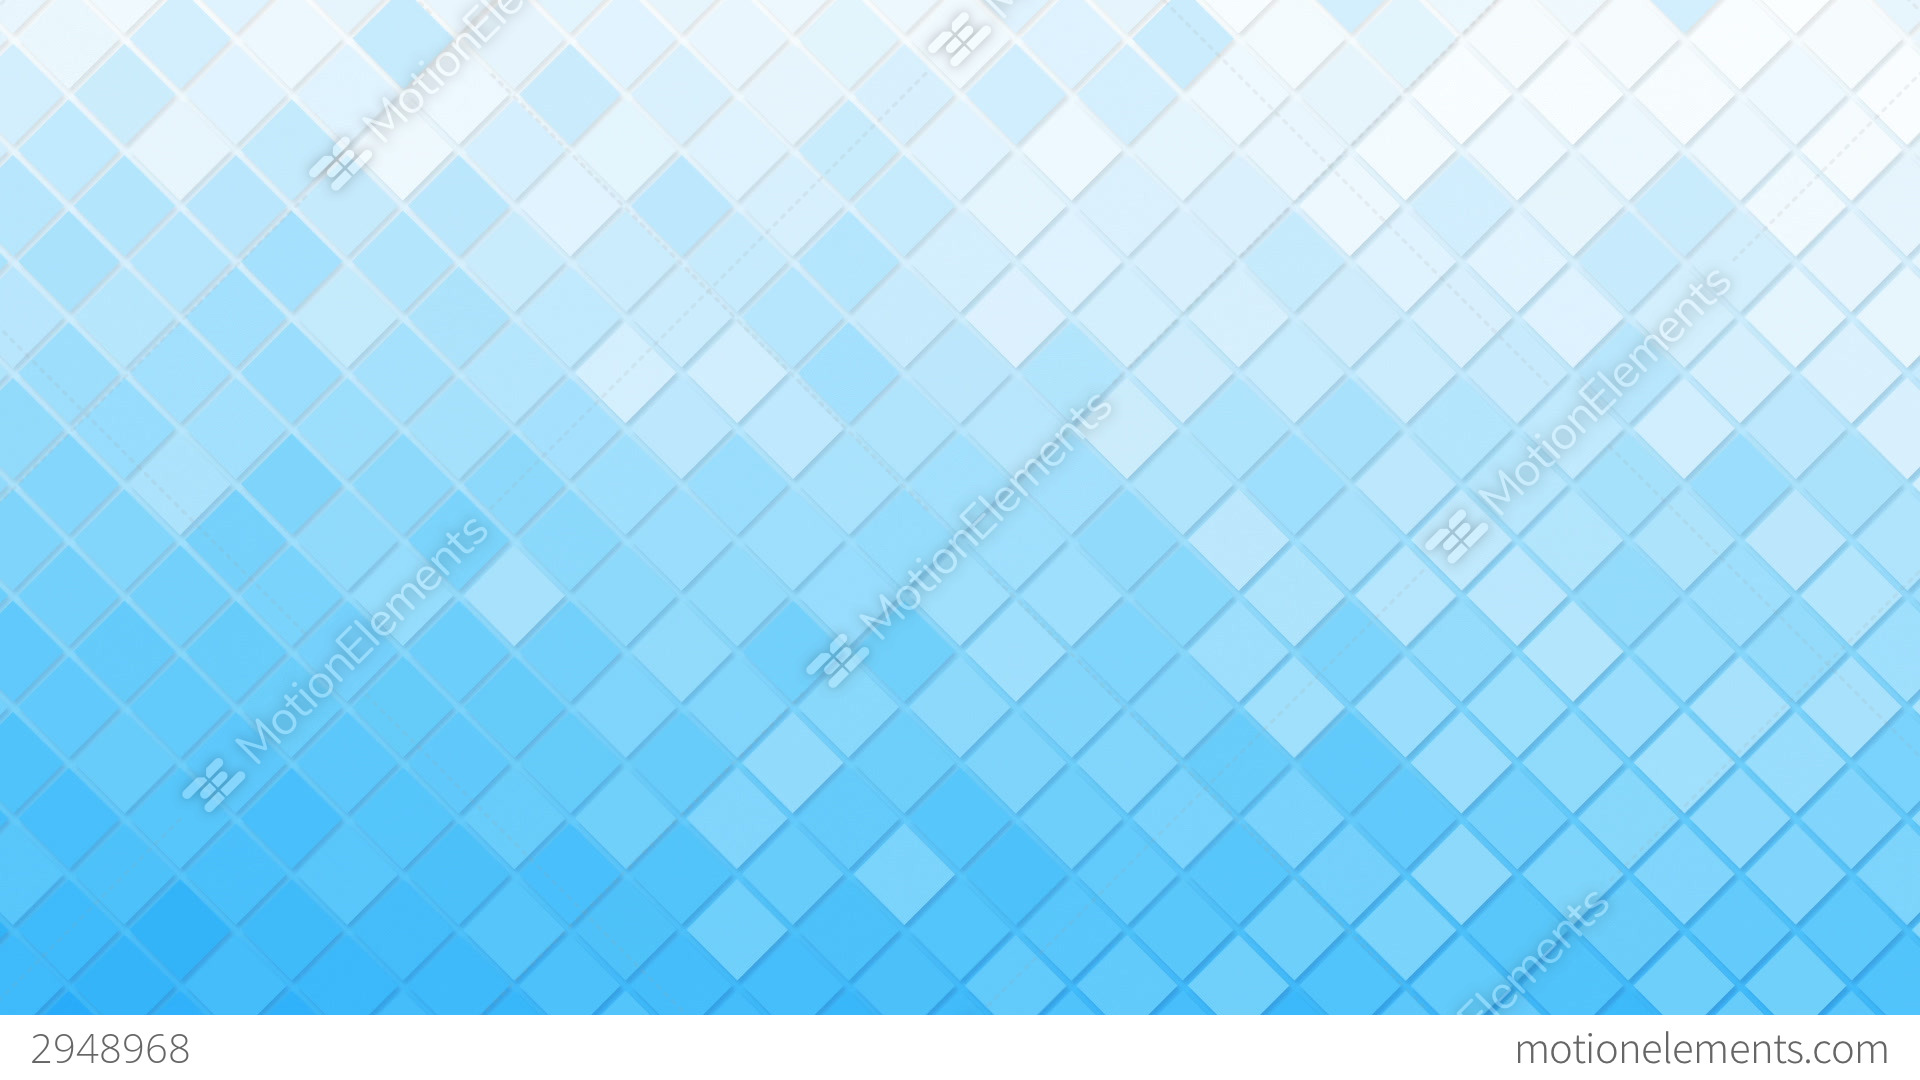 White Blue Rhomb Mosaic Tile Loopable Background Stock